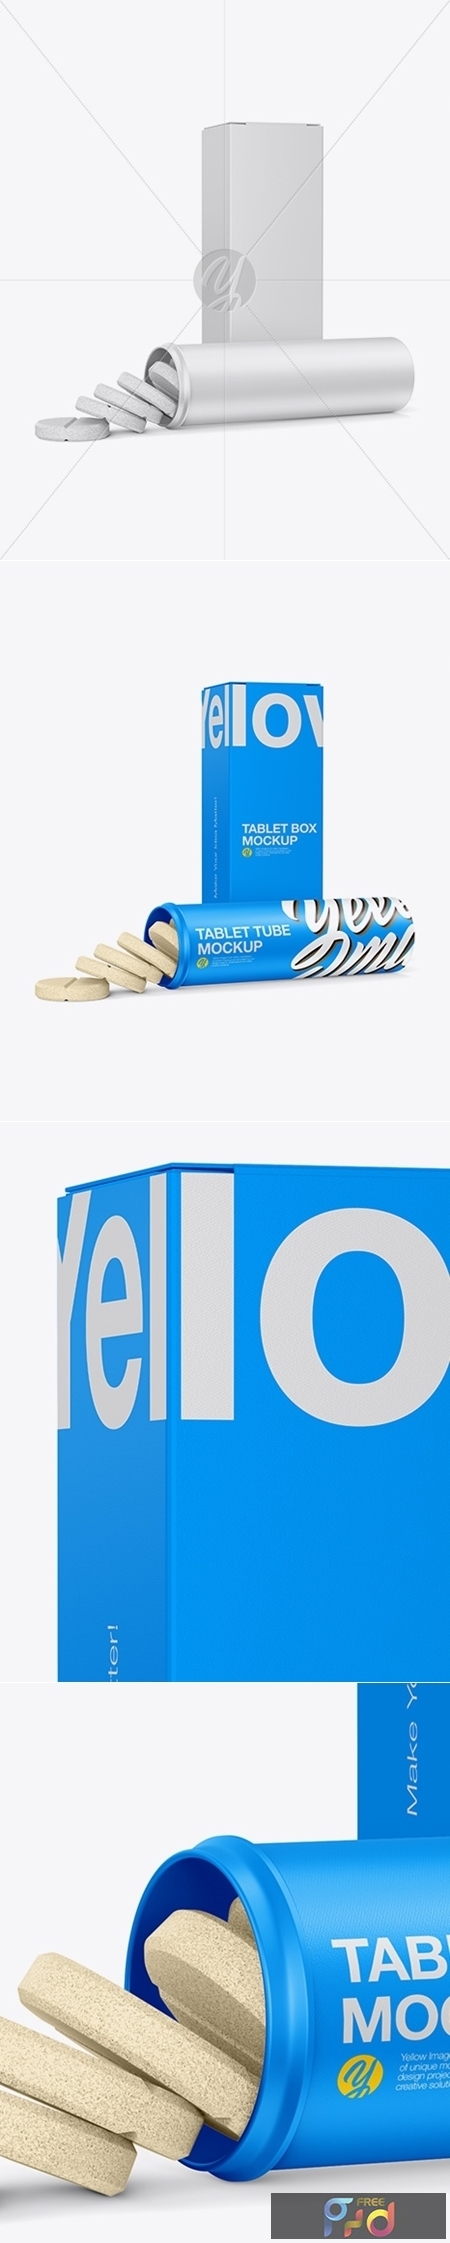 Opened Tablets Tube & Paper Box Mockup - Half Side View 24164 1